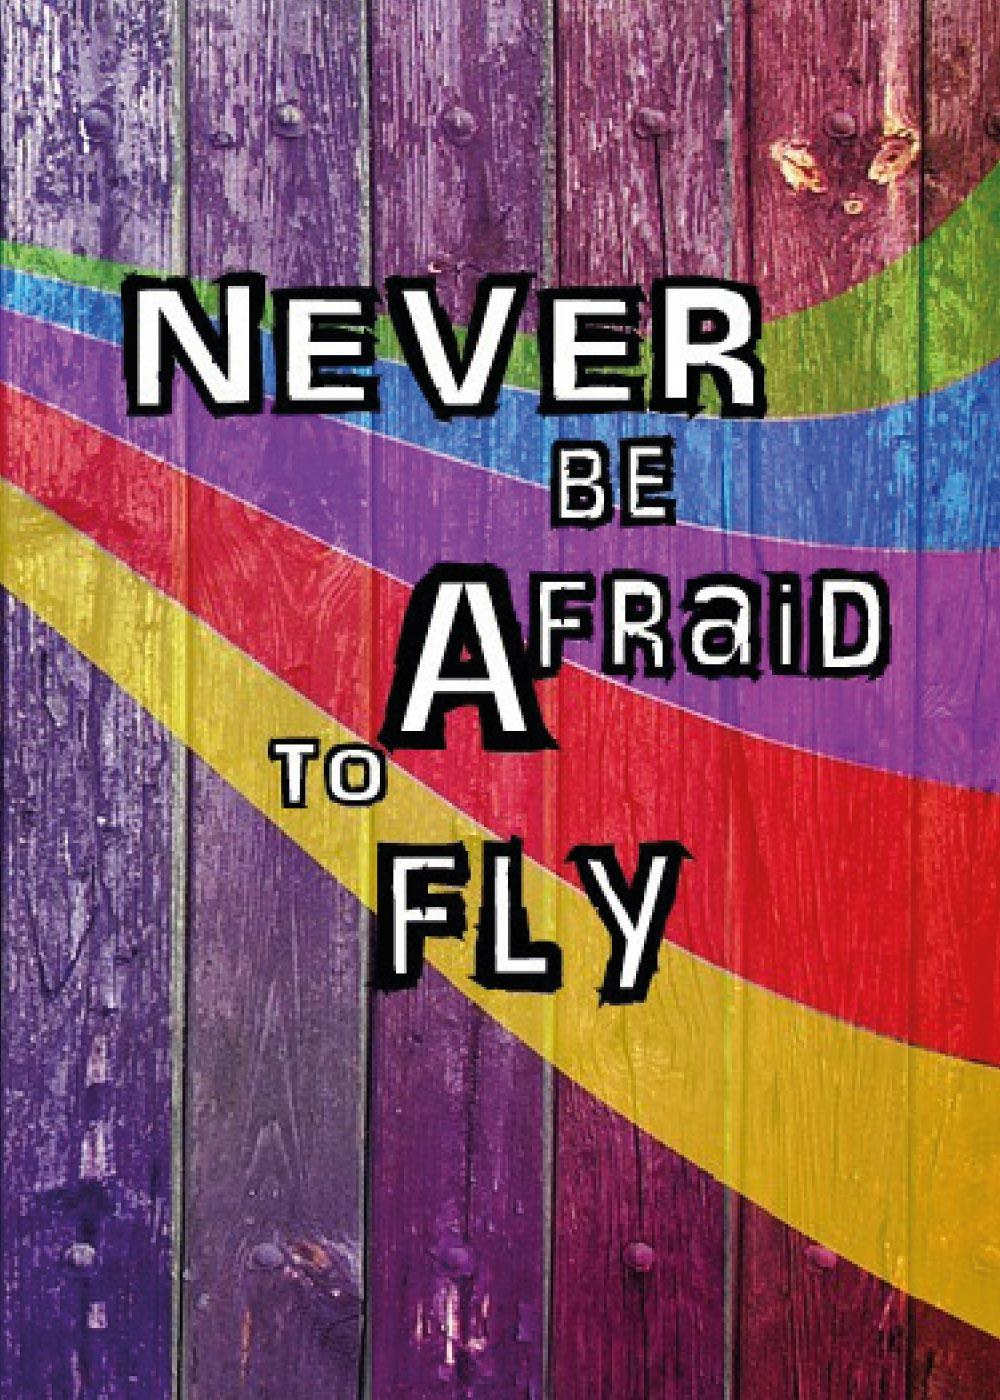 Never be afraid to fly